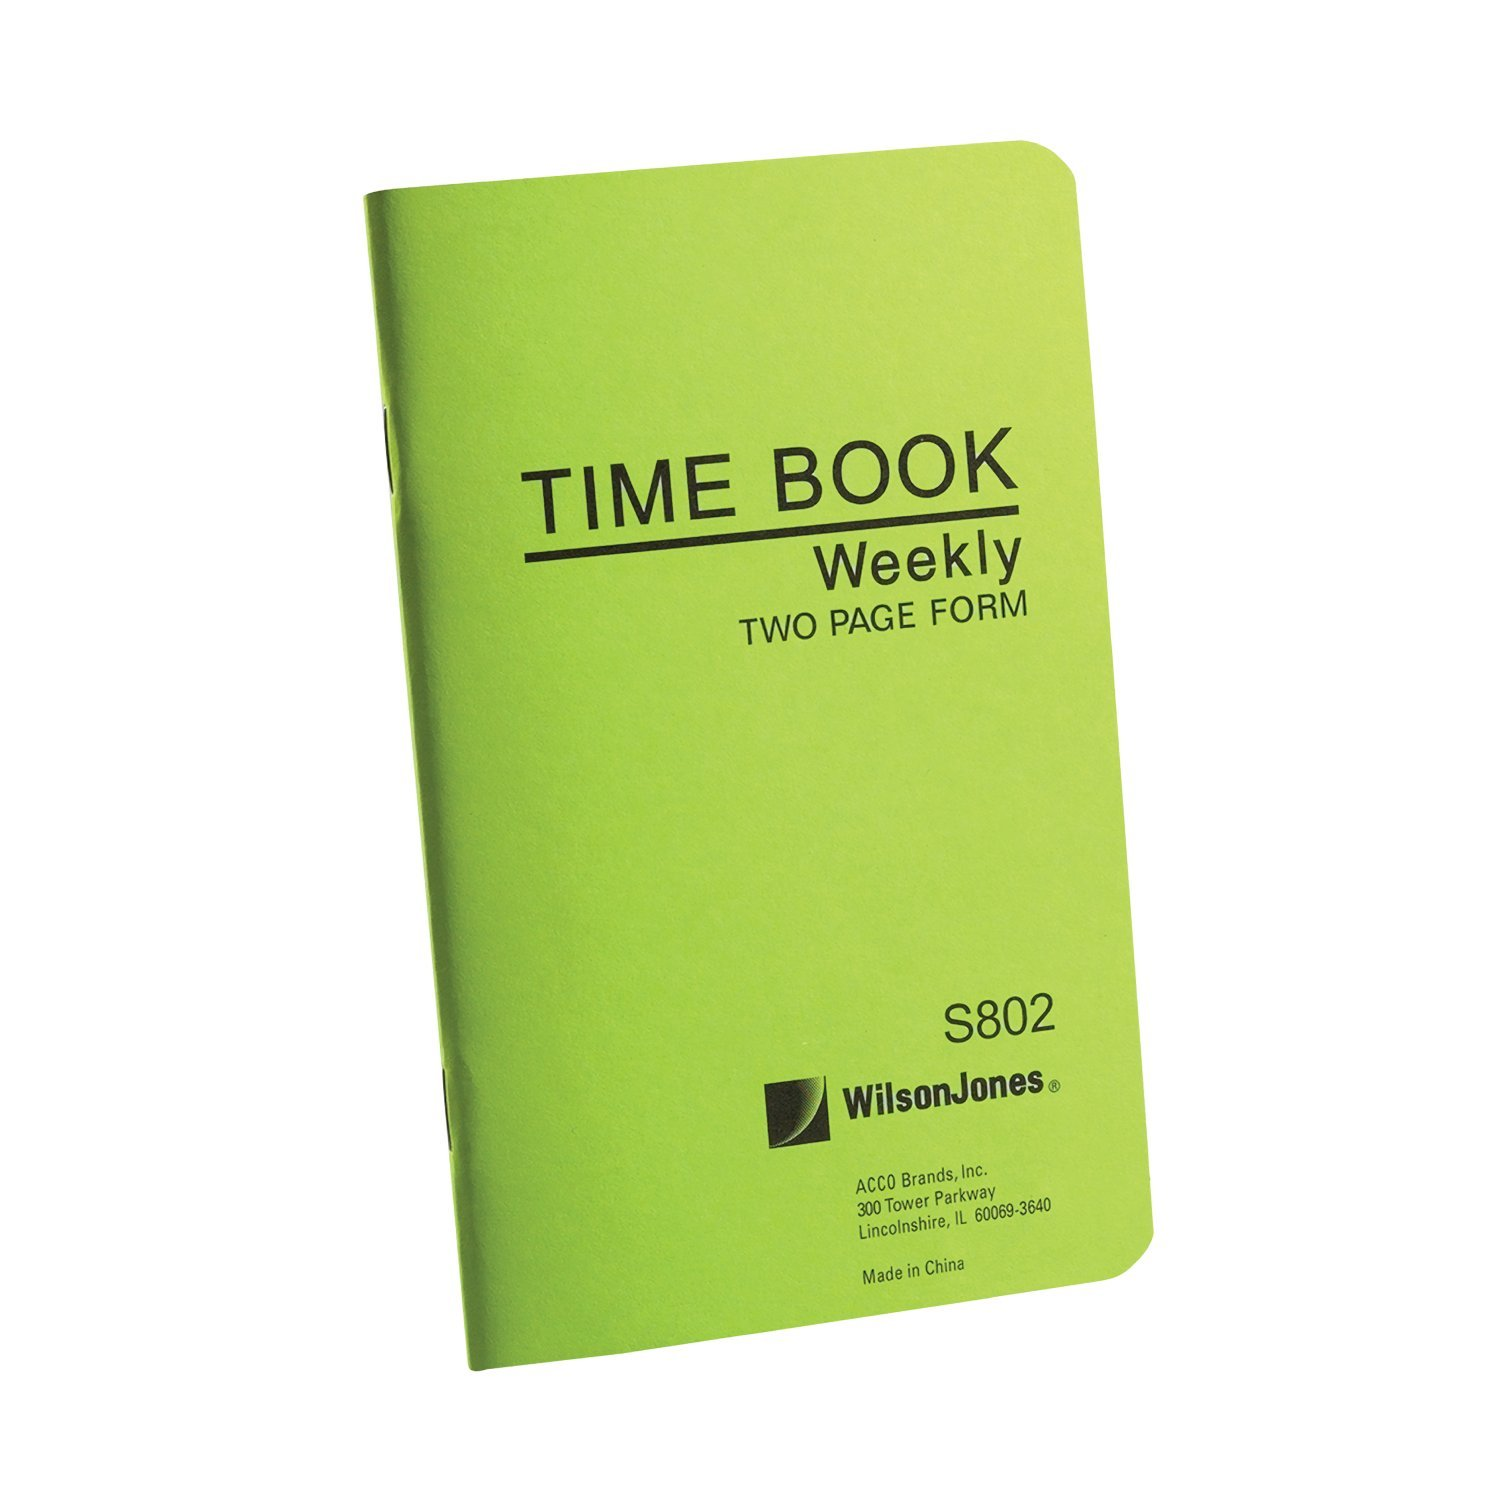 Wilson Jones Foreman's Pocket Size Employee Time Book, 4.13 x 6.75 Inches, 36 Pages, Green (WS802) ACCO Brands